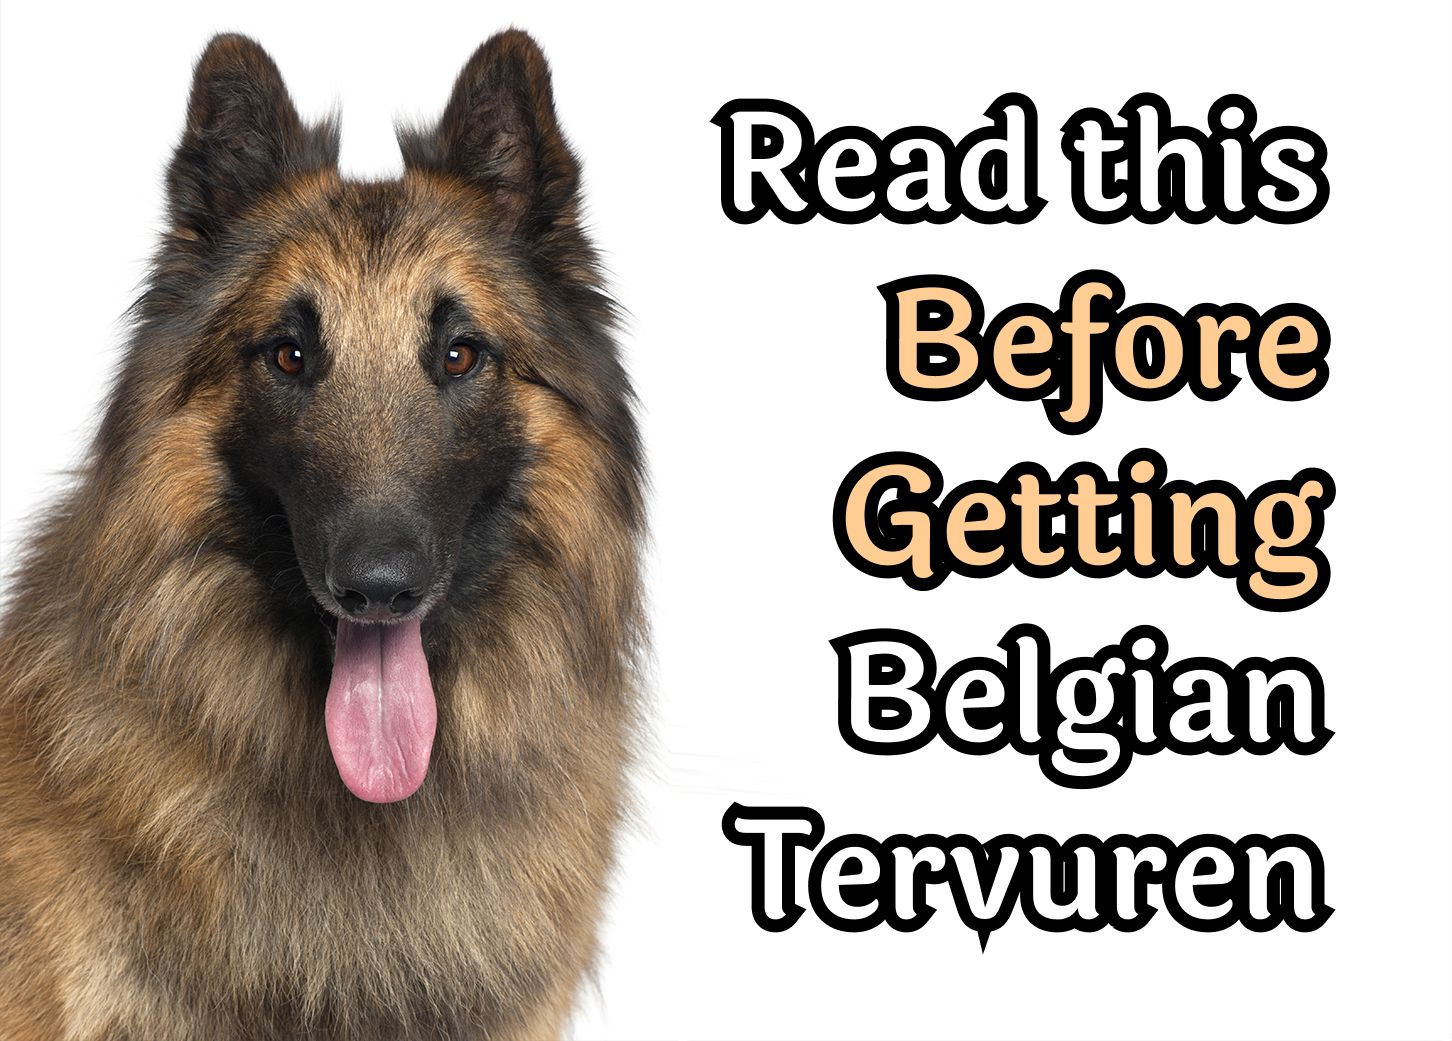 32 Questions To Consider Before Getting A Belgian Tervuren